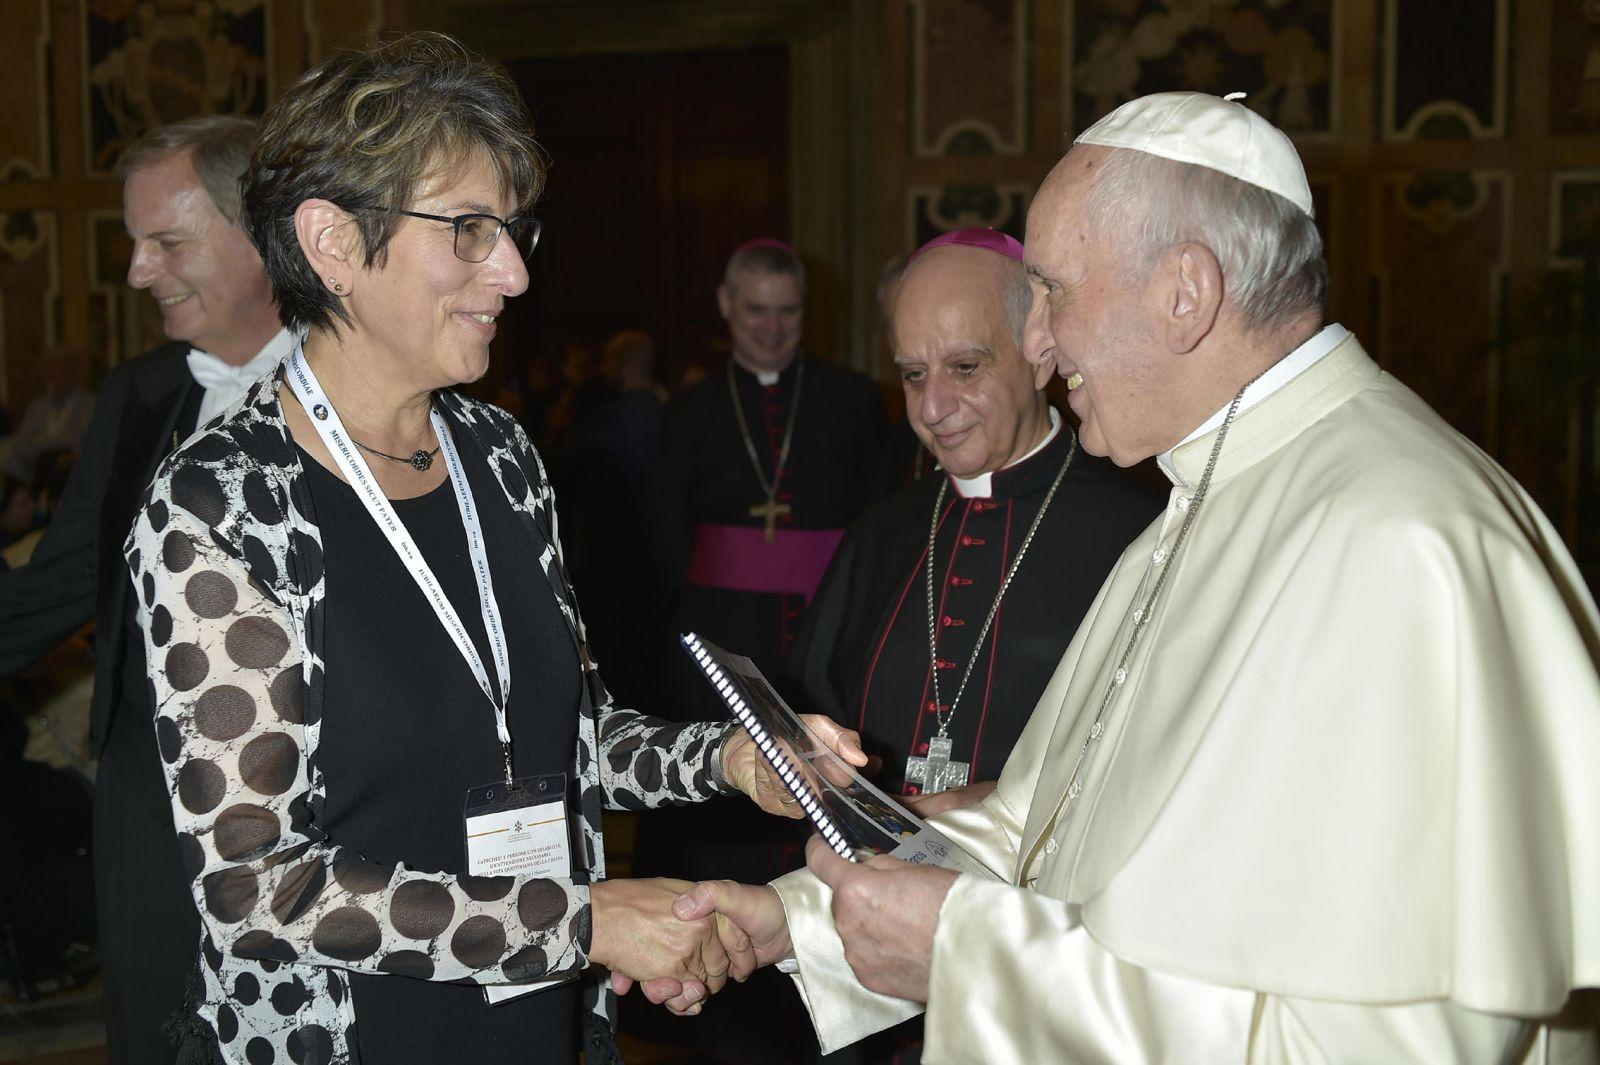 Anne Masters, Director, presenting Book of Greetings to Pope Francis at the Vatcan